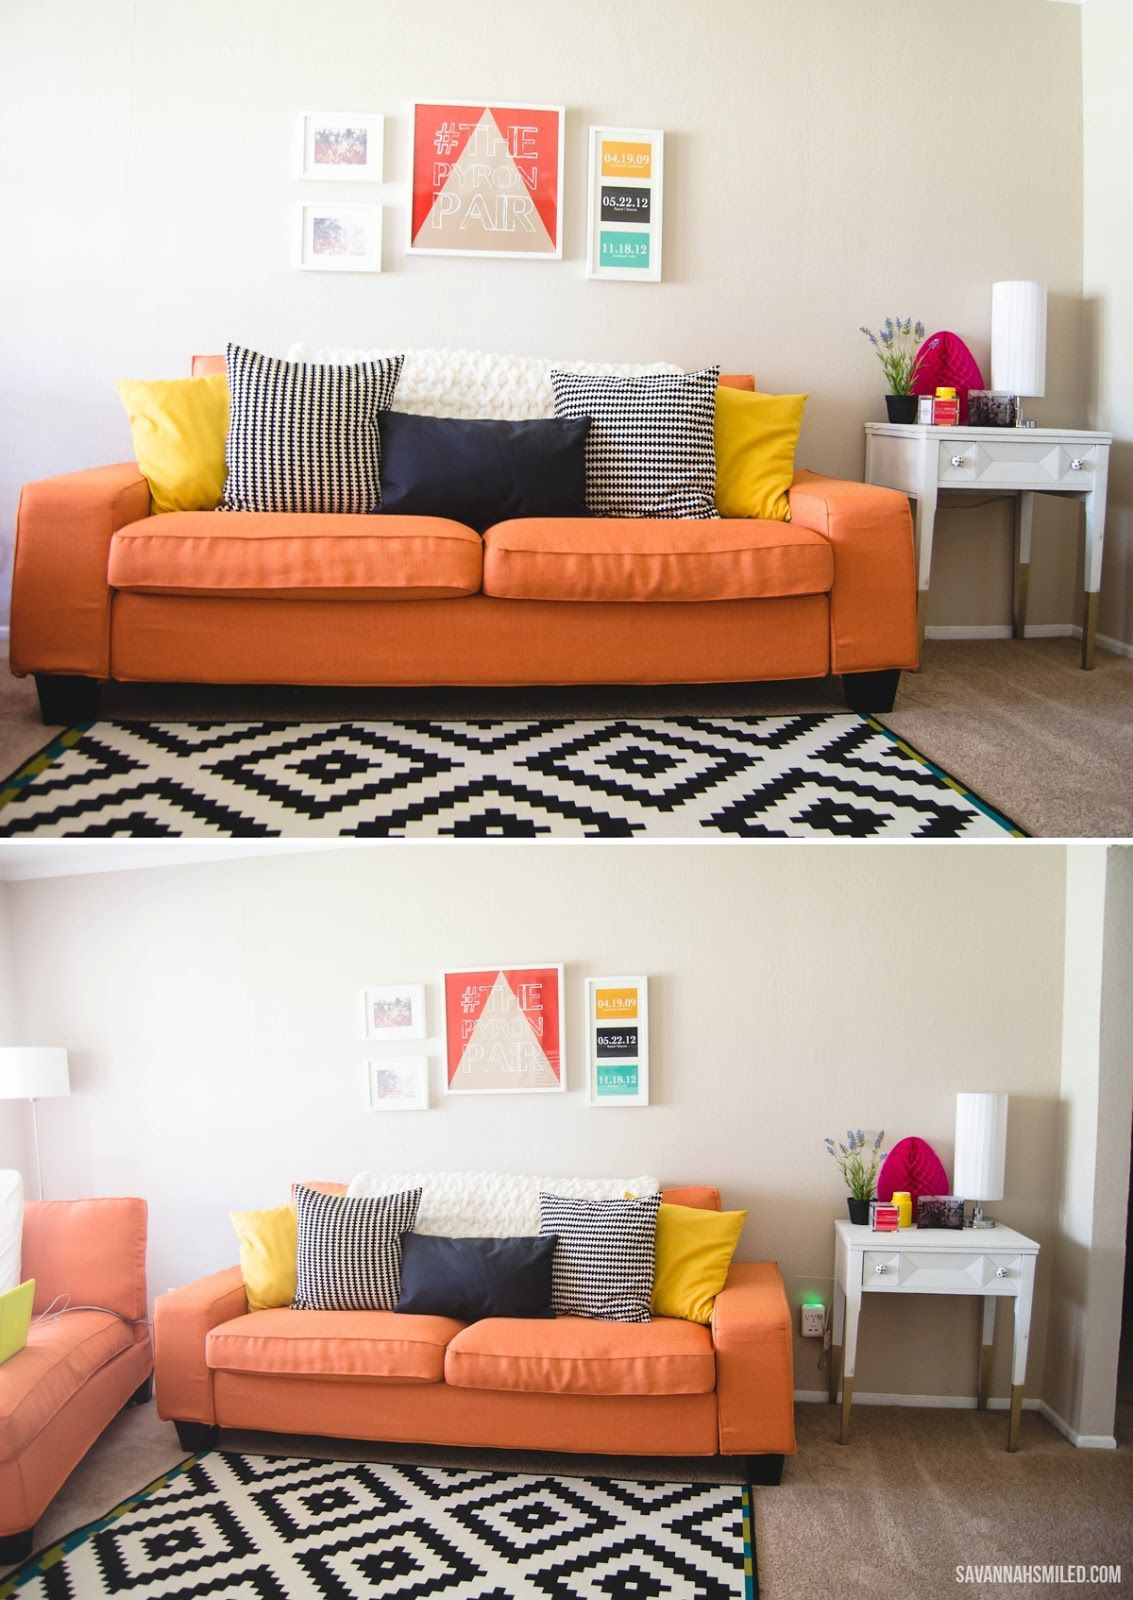 17 Best images about IKEA sofa spotlight on Pinterest   Florida houses   Custom slipcovers and Gaia. 17 Best images about IKEA sofa spotlight on Pinterest   Florida